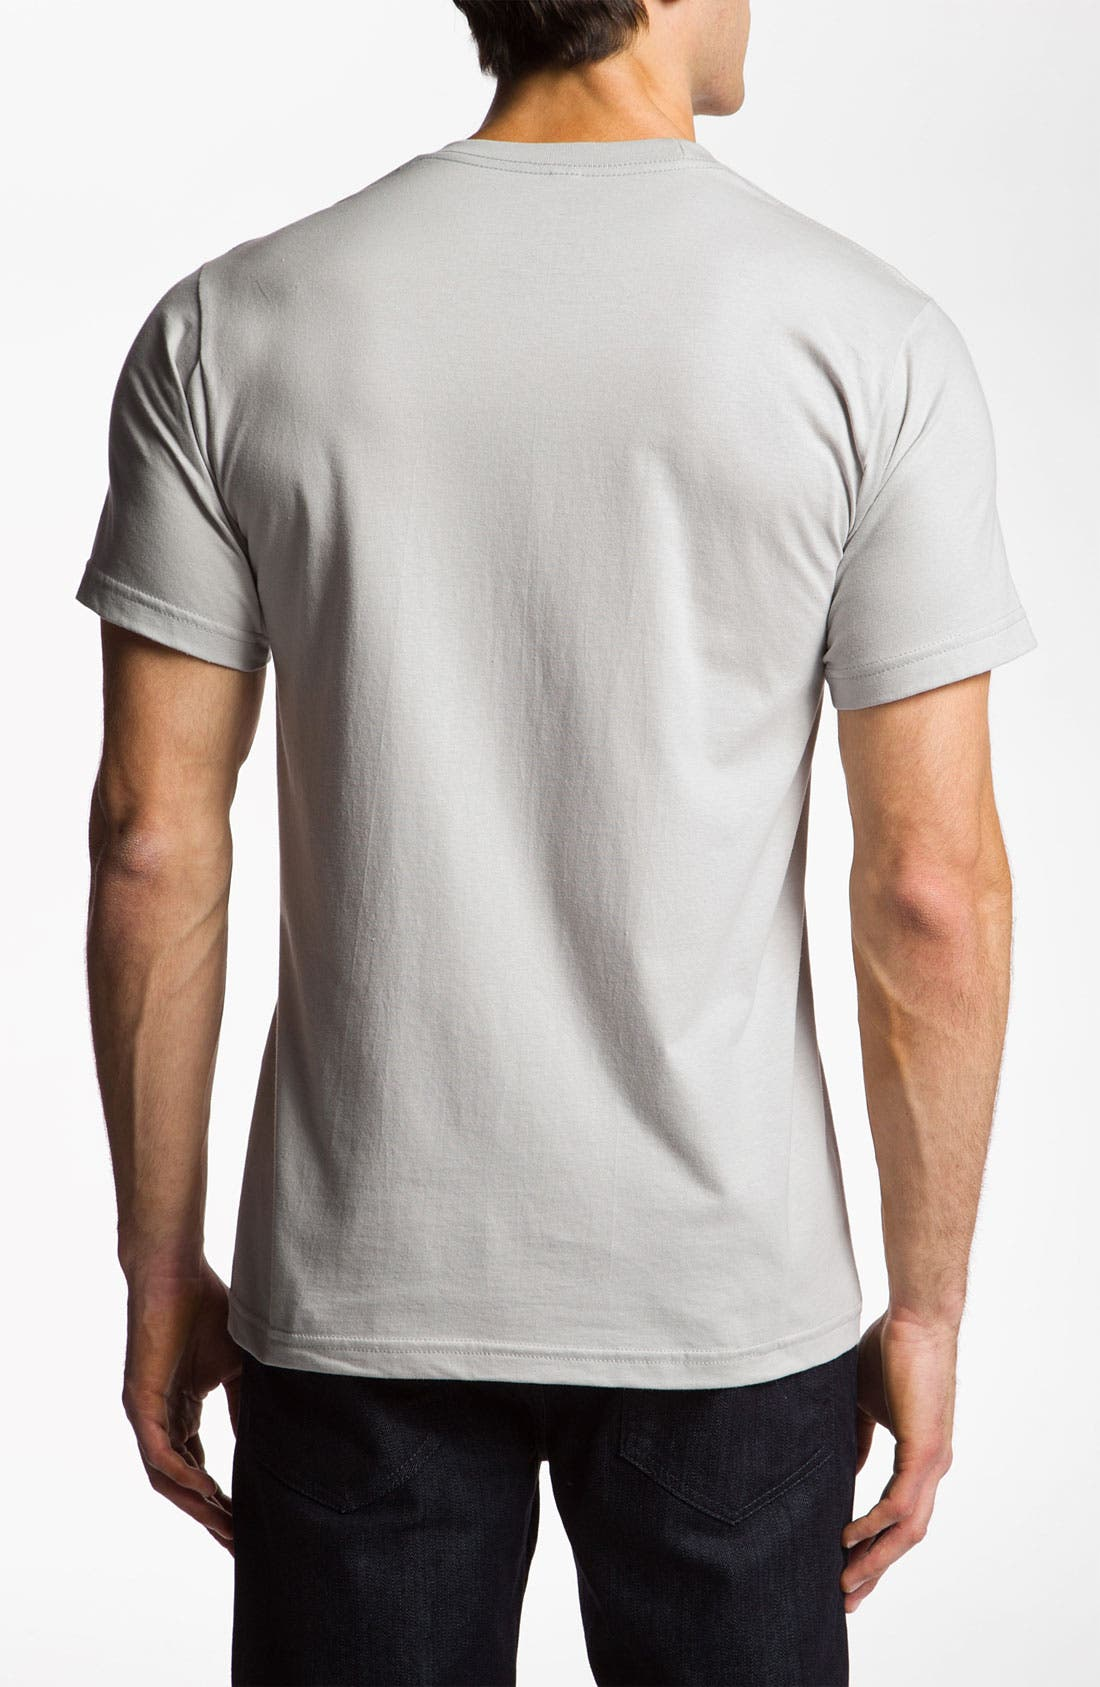 Alternate Image 2  - The Poster List 'Drums' Graphic T-Shirt